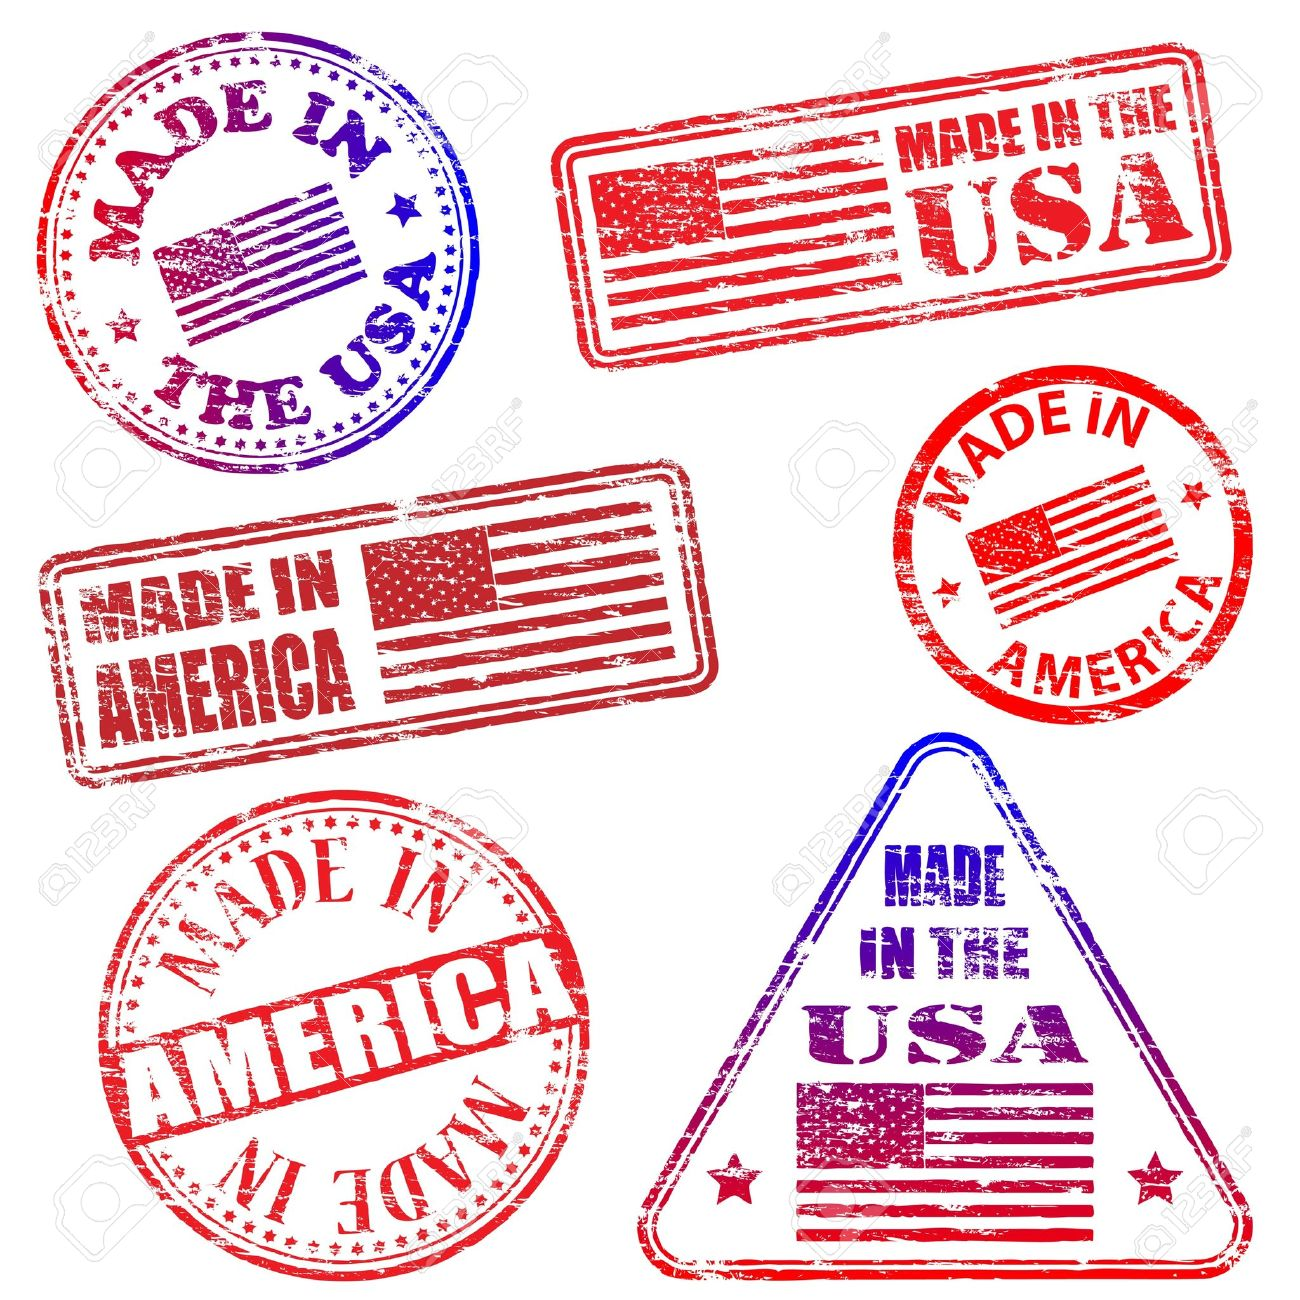 Made in America. Rubber stamp illustrations - 17373390